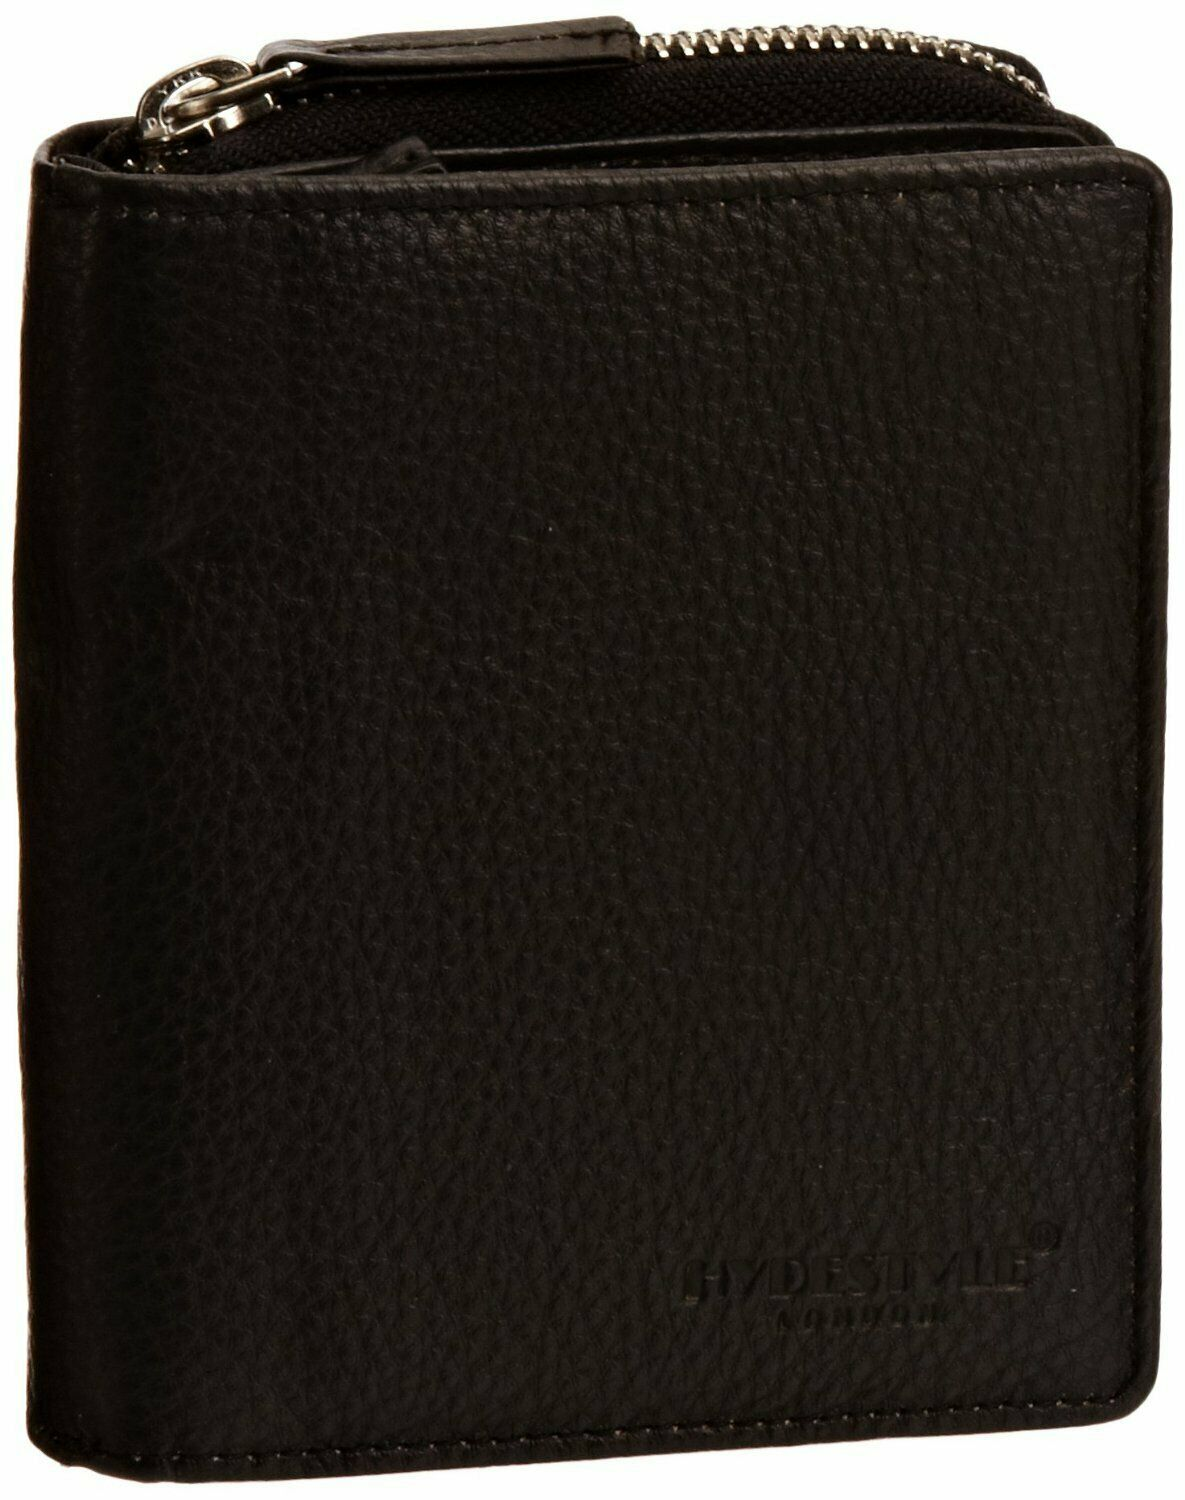 HYDESTYLE Pratico Grained Nappa Leather Trifold Ladies LW01 Black